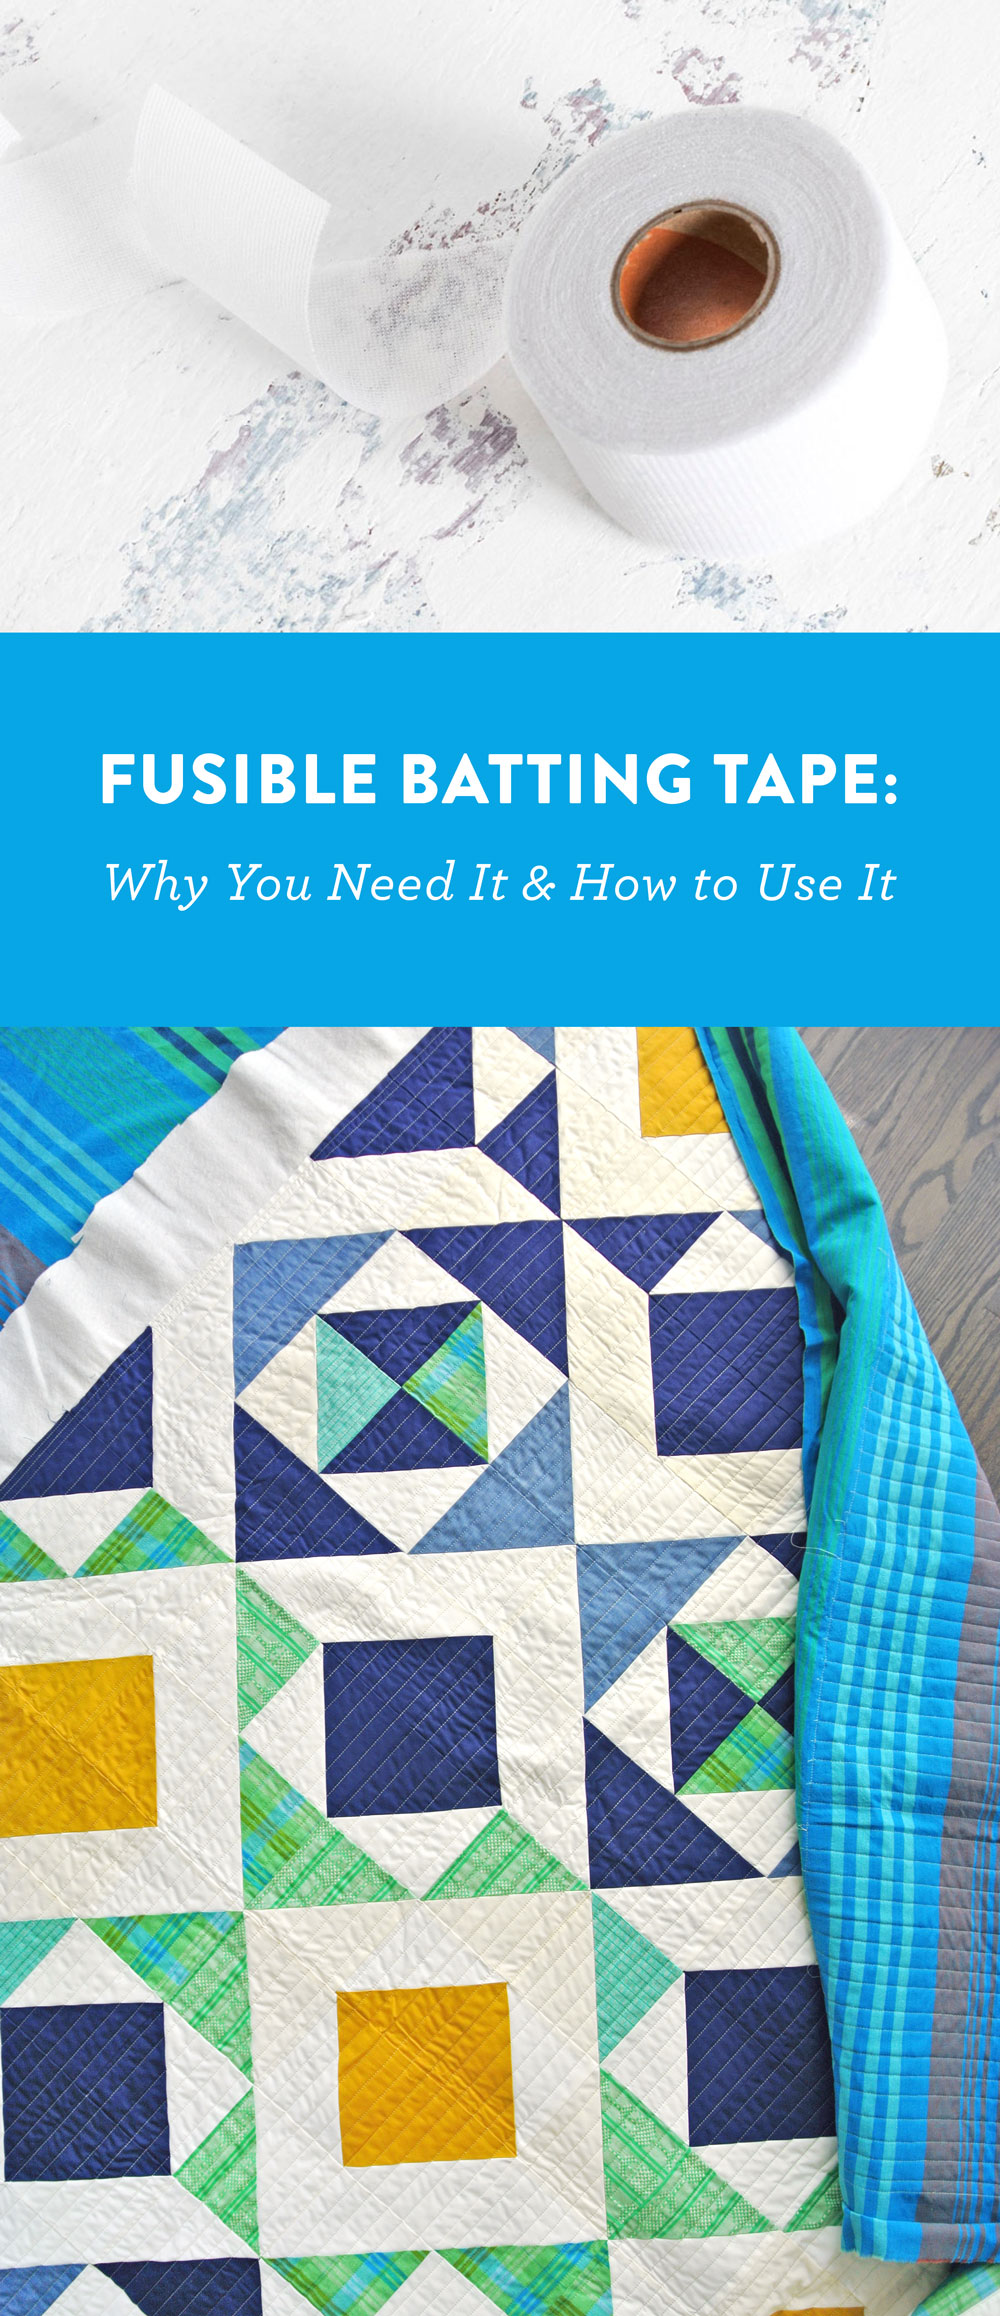 Fusible batting tape! Why you need it and how to use it! | Suzy Quilts https://suzyquilts.com/fusible-batting-tape-why-you-need-it-and-how-to-use-it